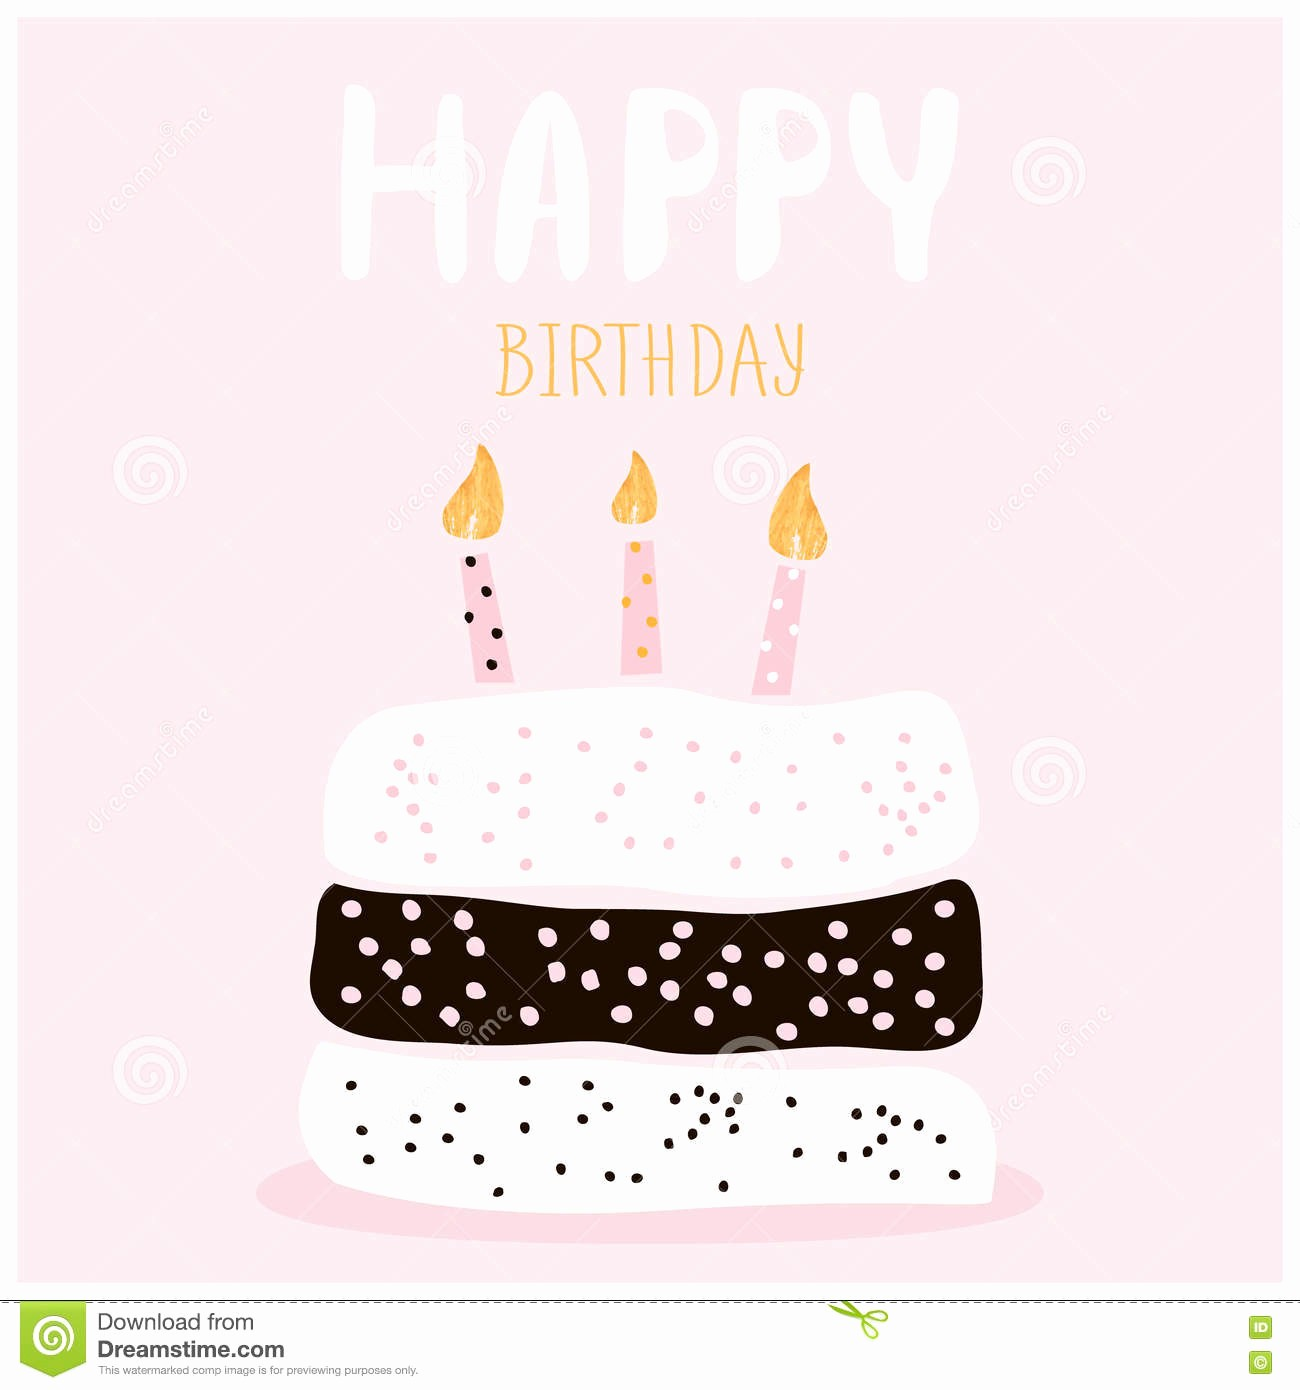 Birthday Card Template with Photo New Cute Cake with Happy Birthday Wish Greeting Card Template